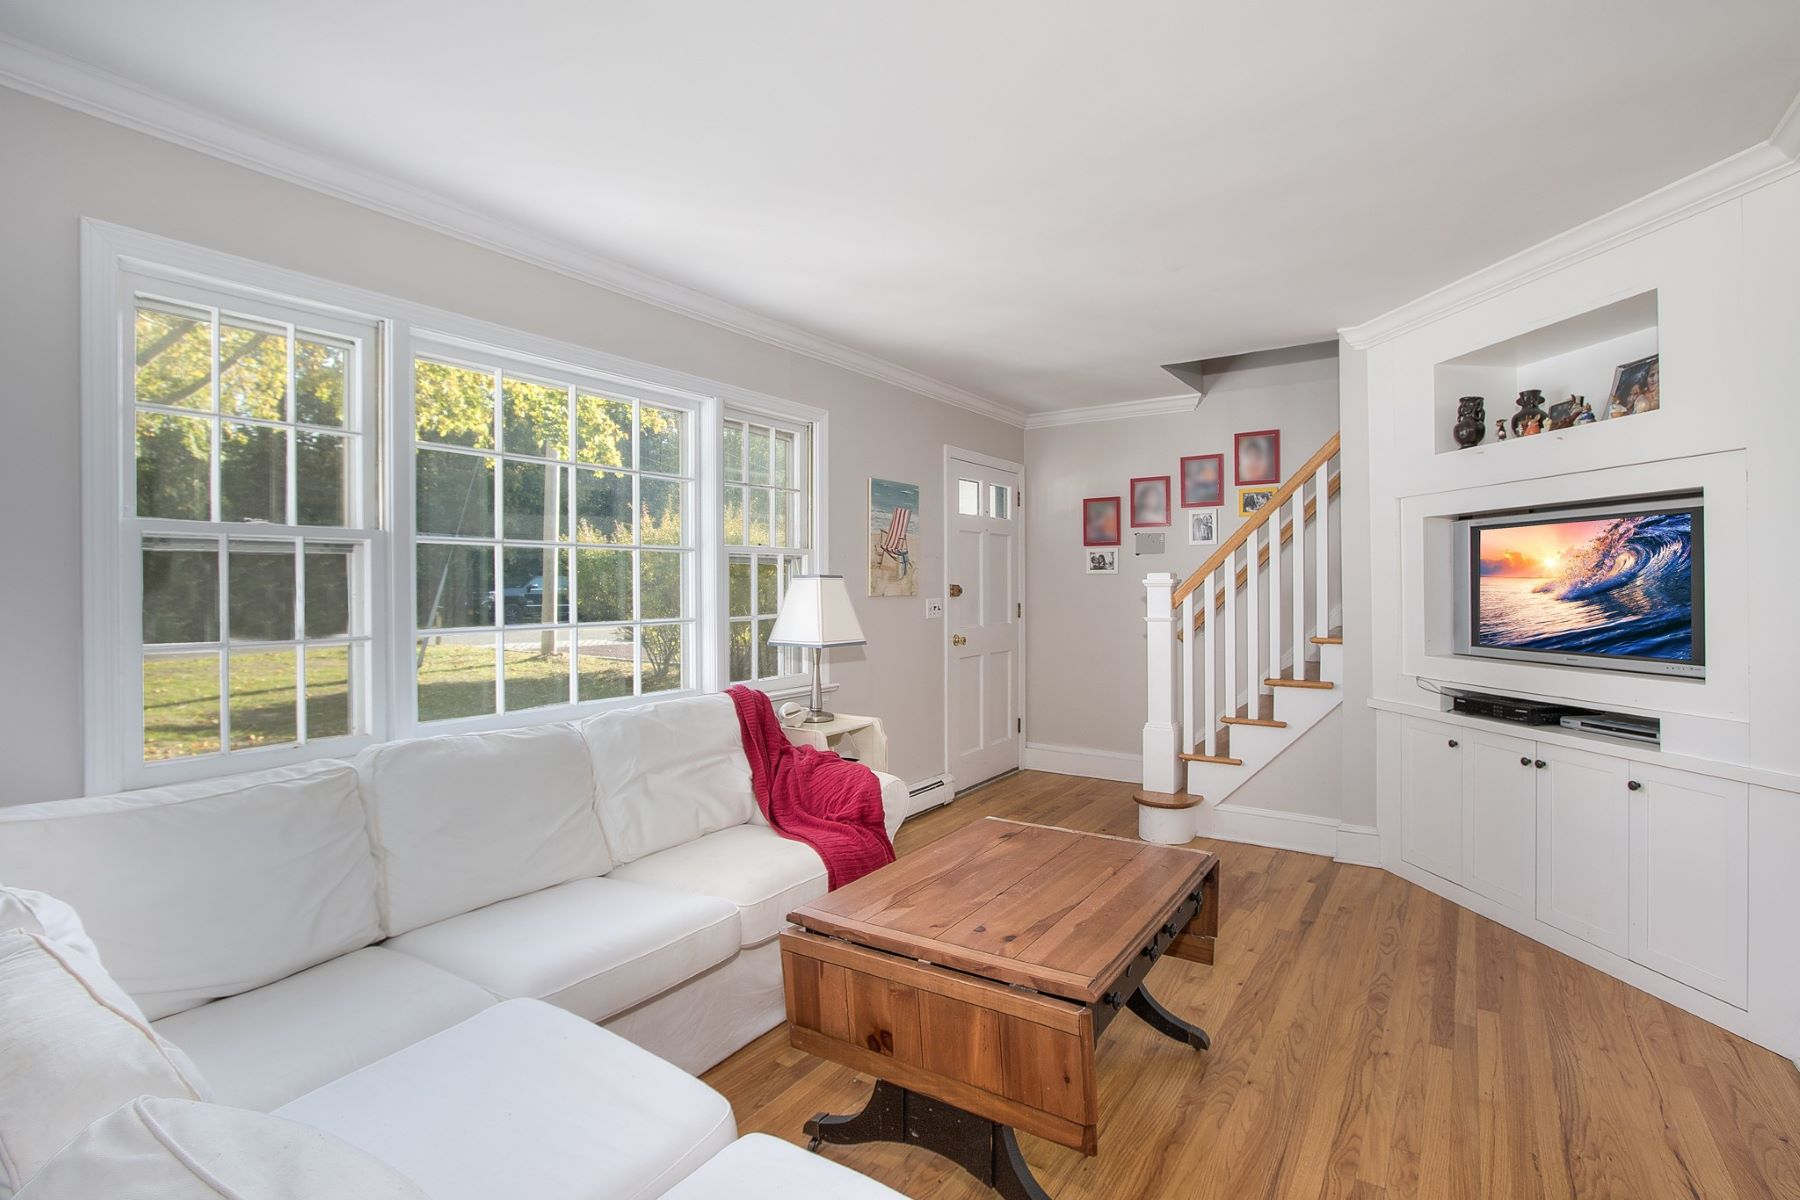 Single Family Home for Sale at 15725 Soundview Ave , Southold, NY 11971 15725 Soundview Ave Southold, New York 11971 United States